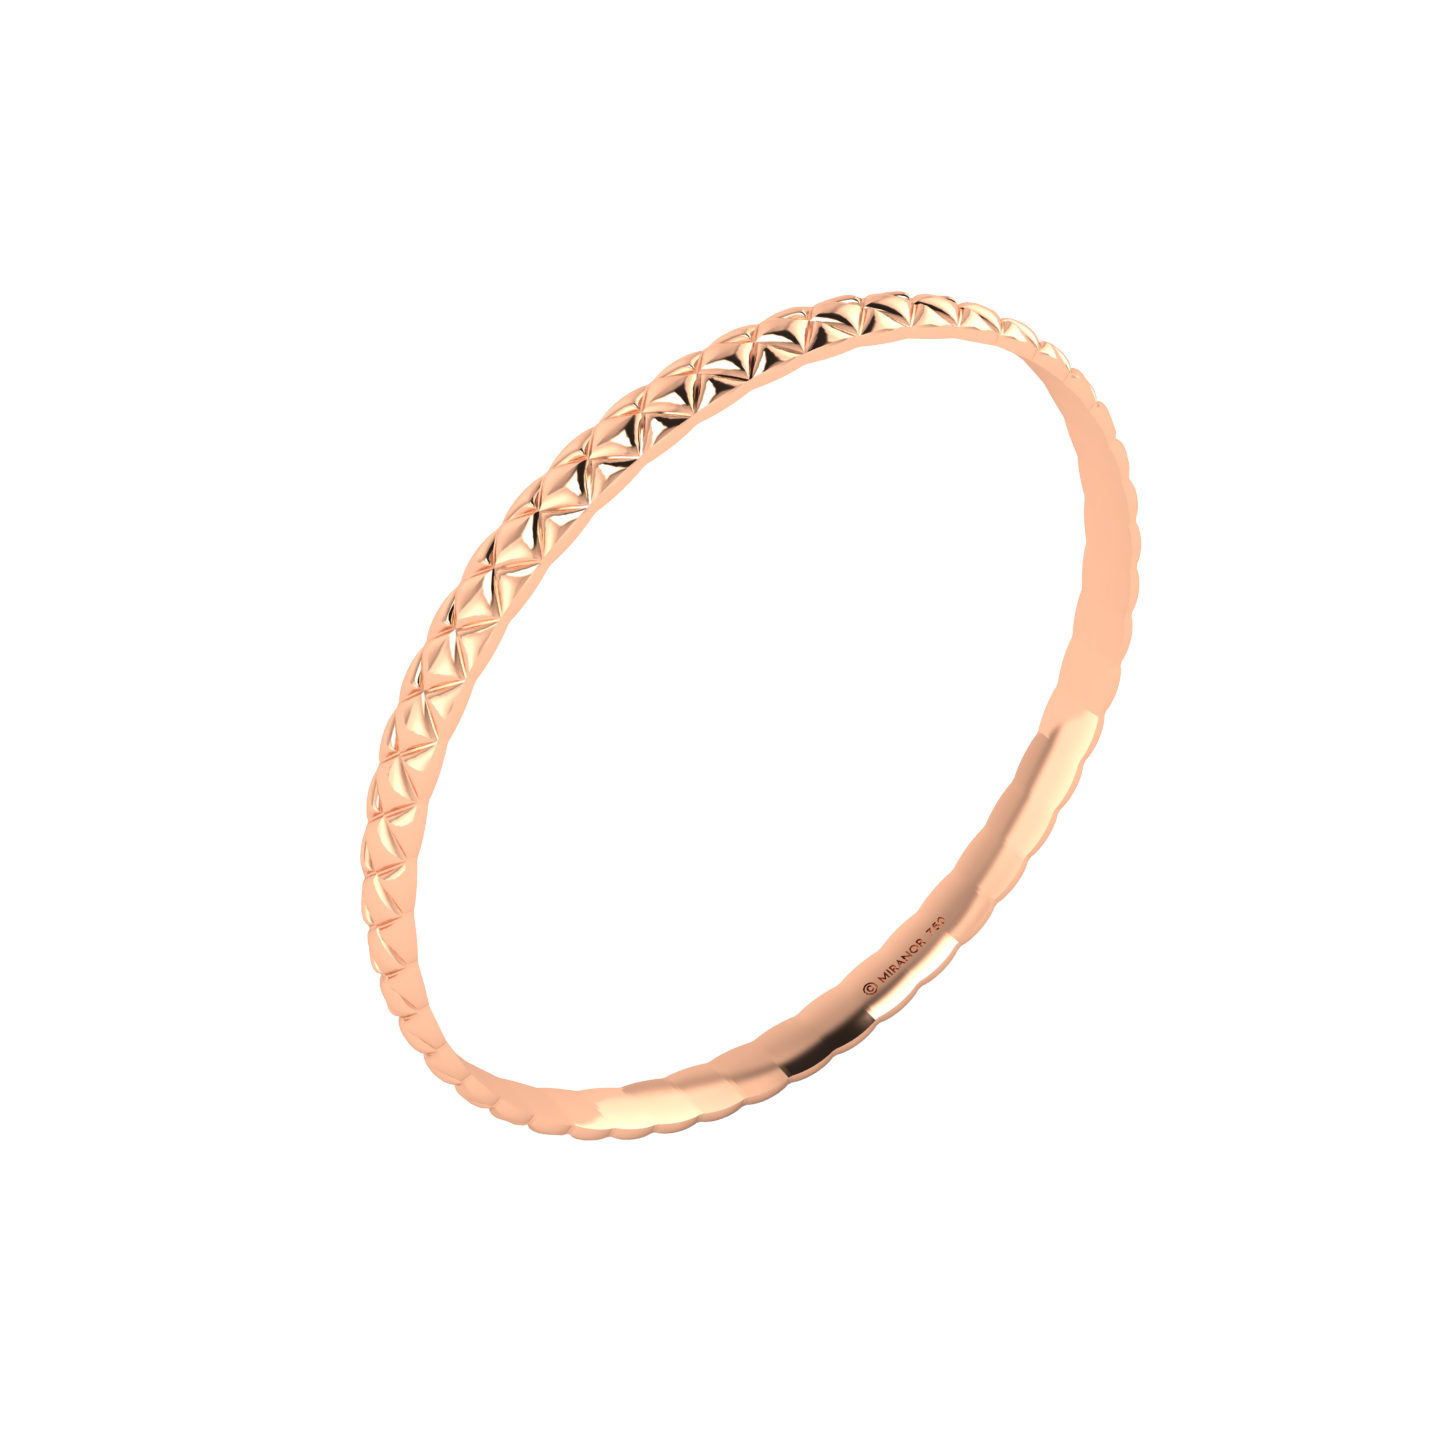 18 karat rose gold Butterscotch 5.5 bangle